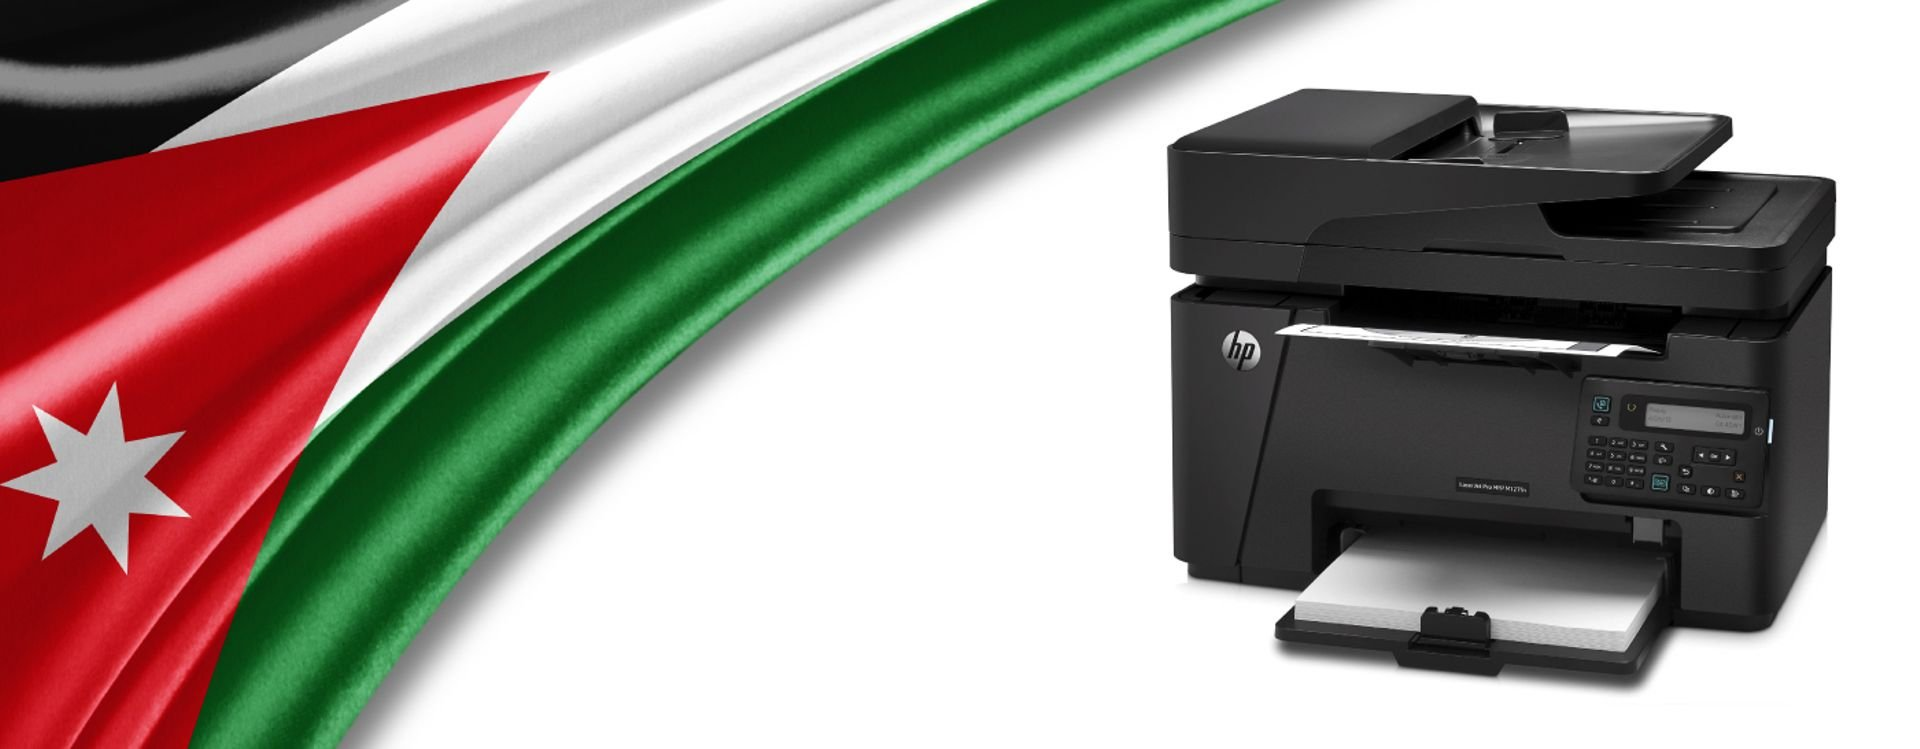 Hewlett-Packard or HP has the biggest market share for multipurpose printers in Jordan.